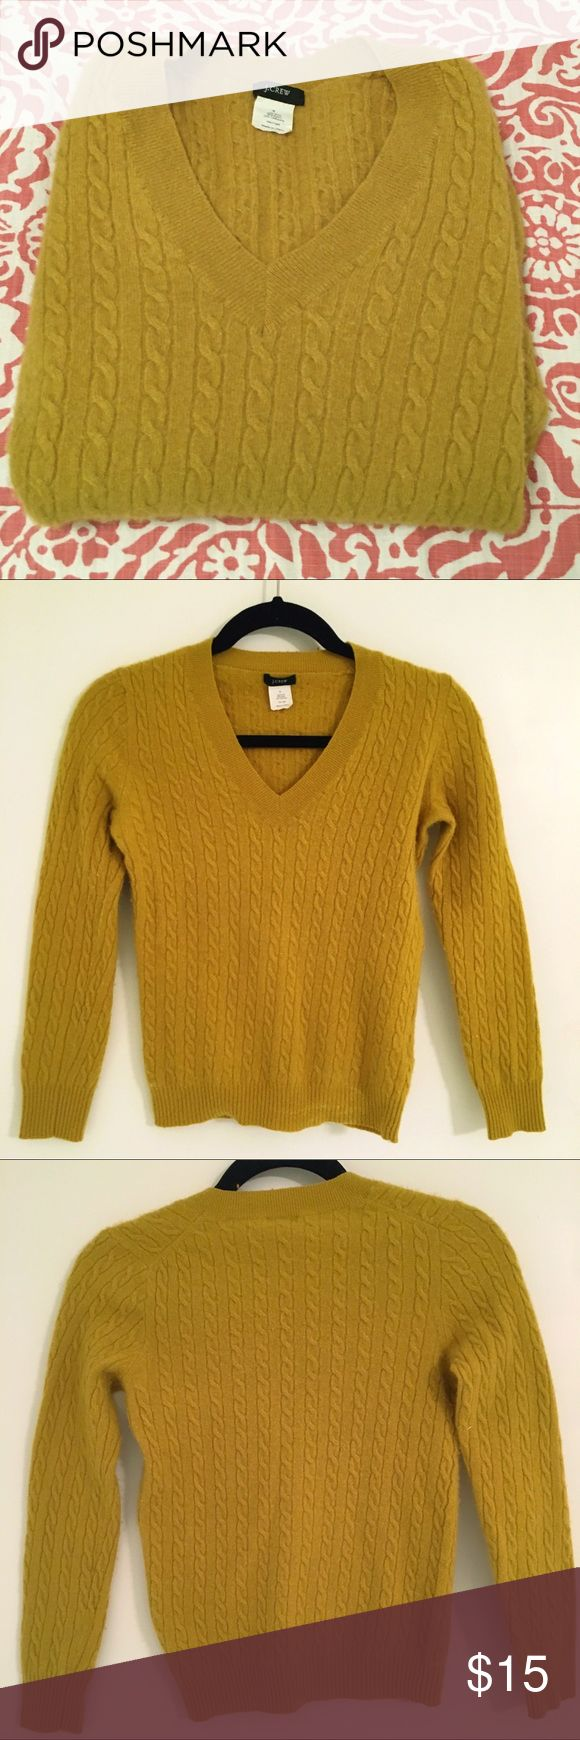 J Crew green v-neck sweater size small J Crew Green v-neck sweater. See cover photo for accurate color. Good condition except for some light pearling of fabric. Size small J. Crew Sweaters V-Necks